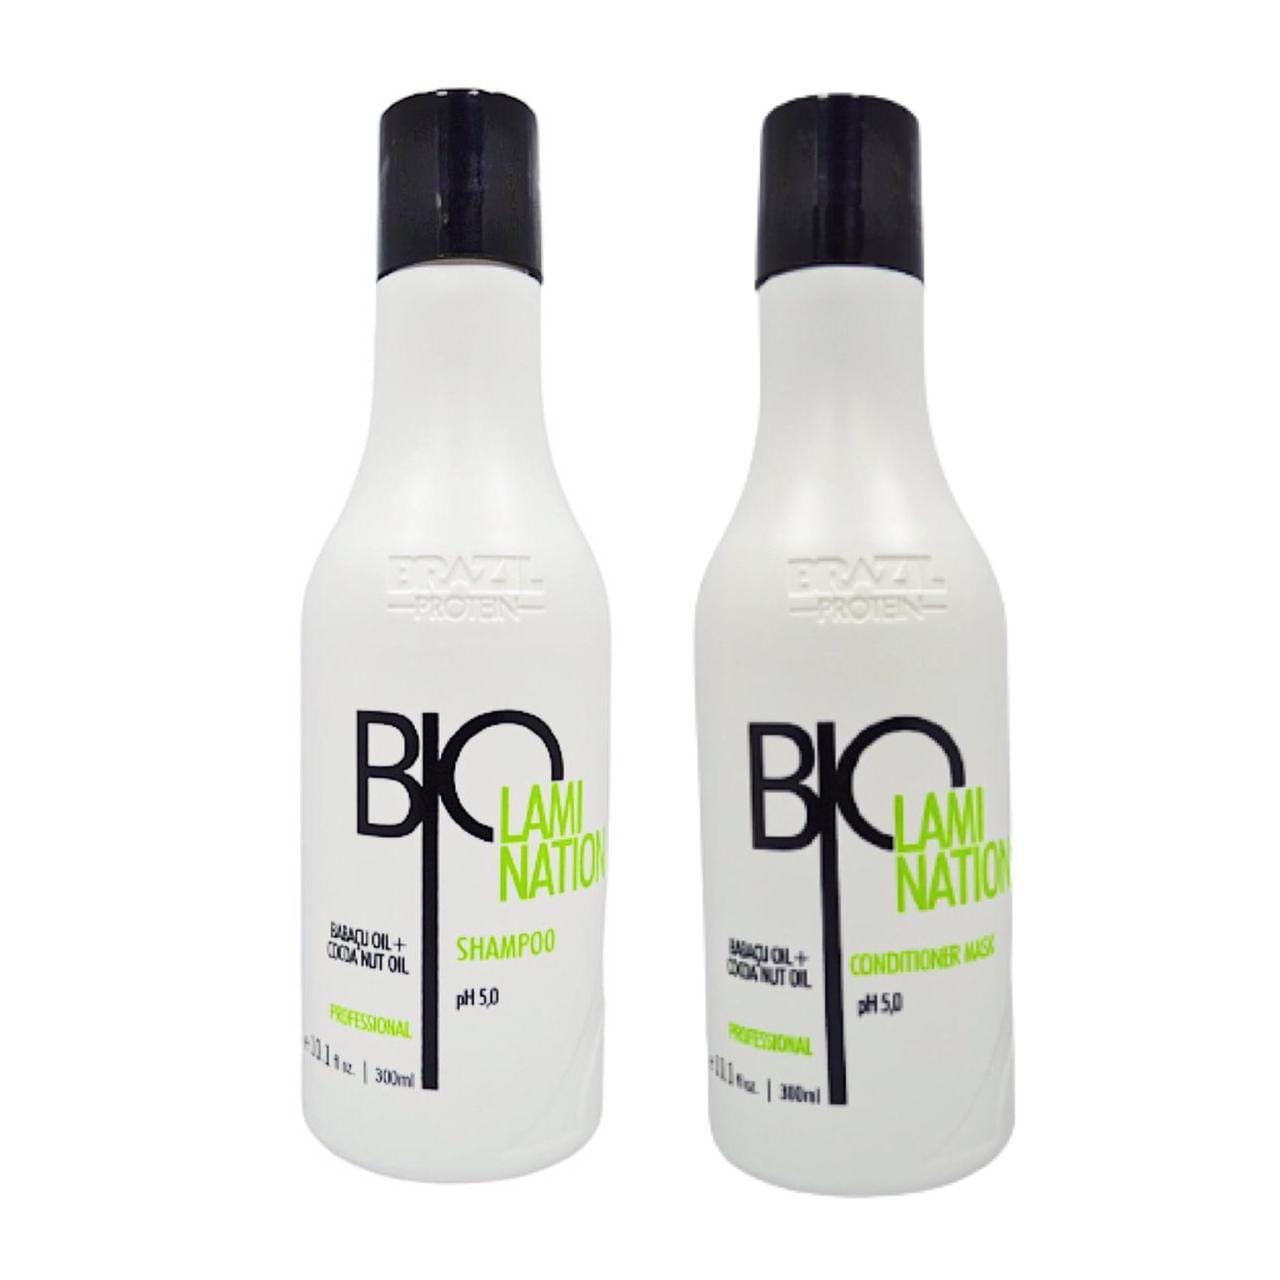 Brazil Protein Bio Lamination After Care Set 2 x 300ml